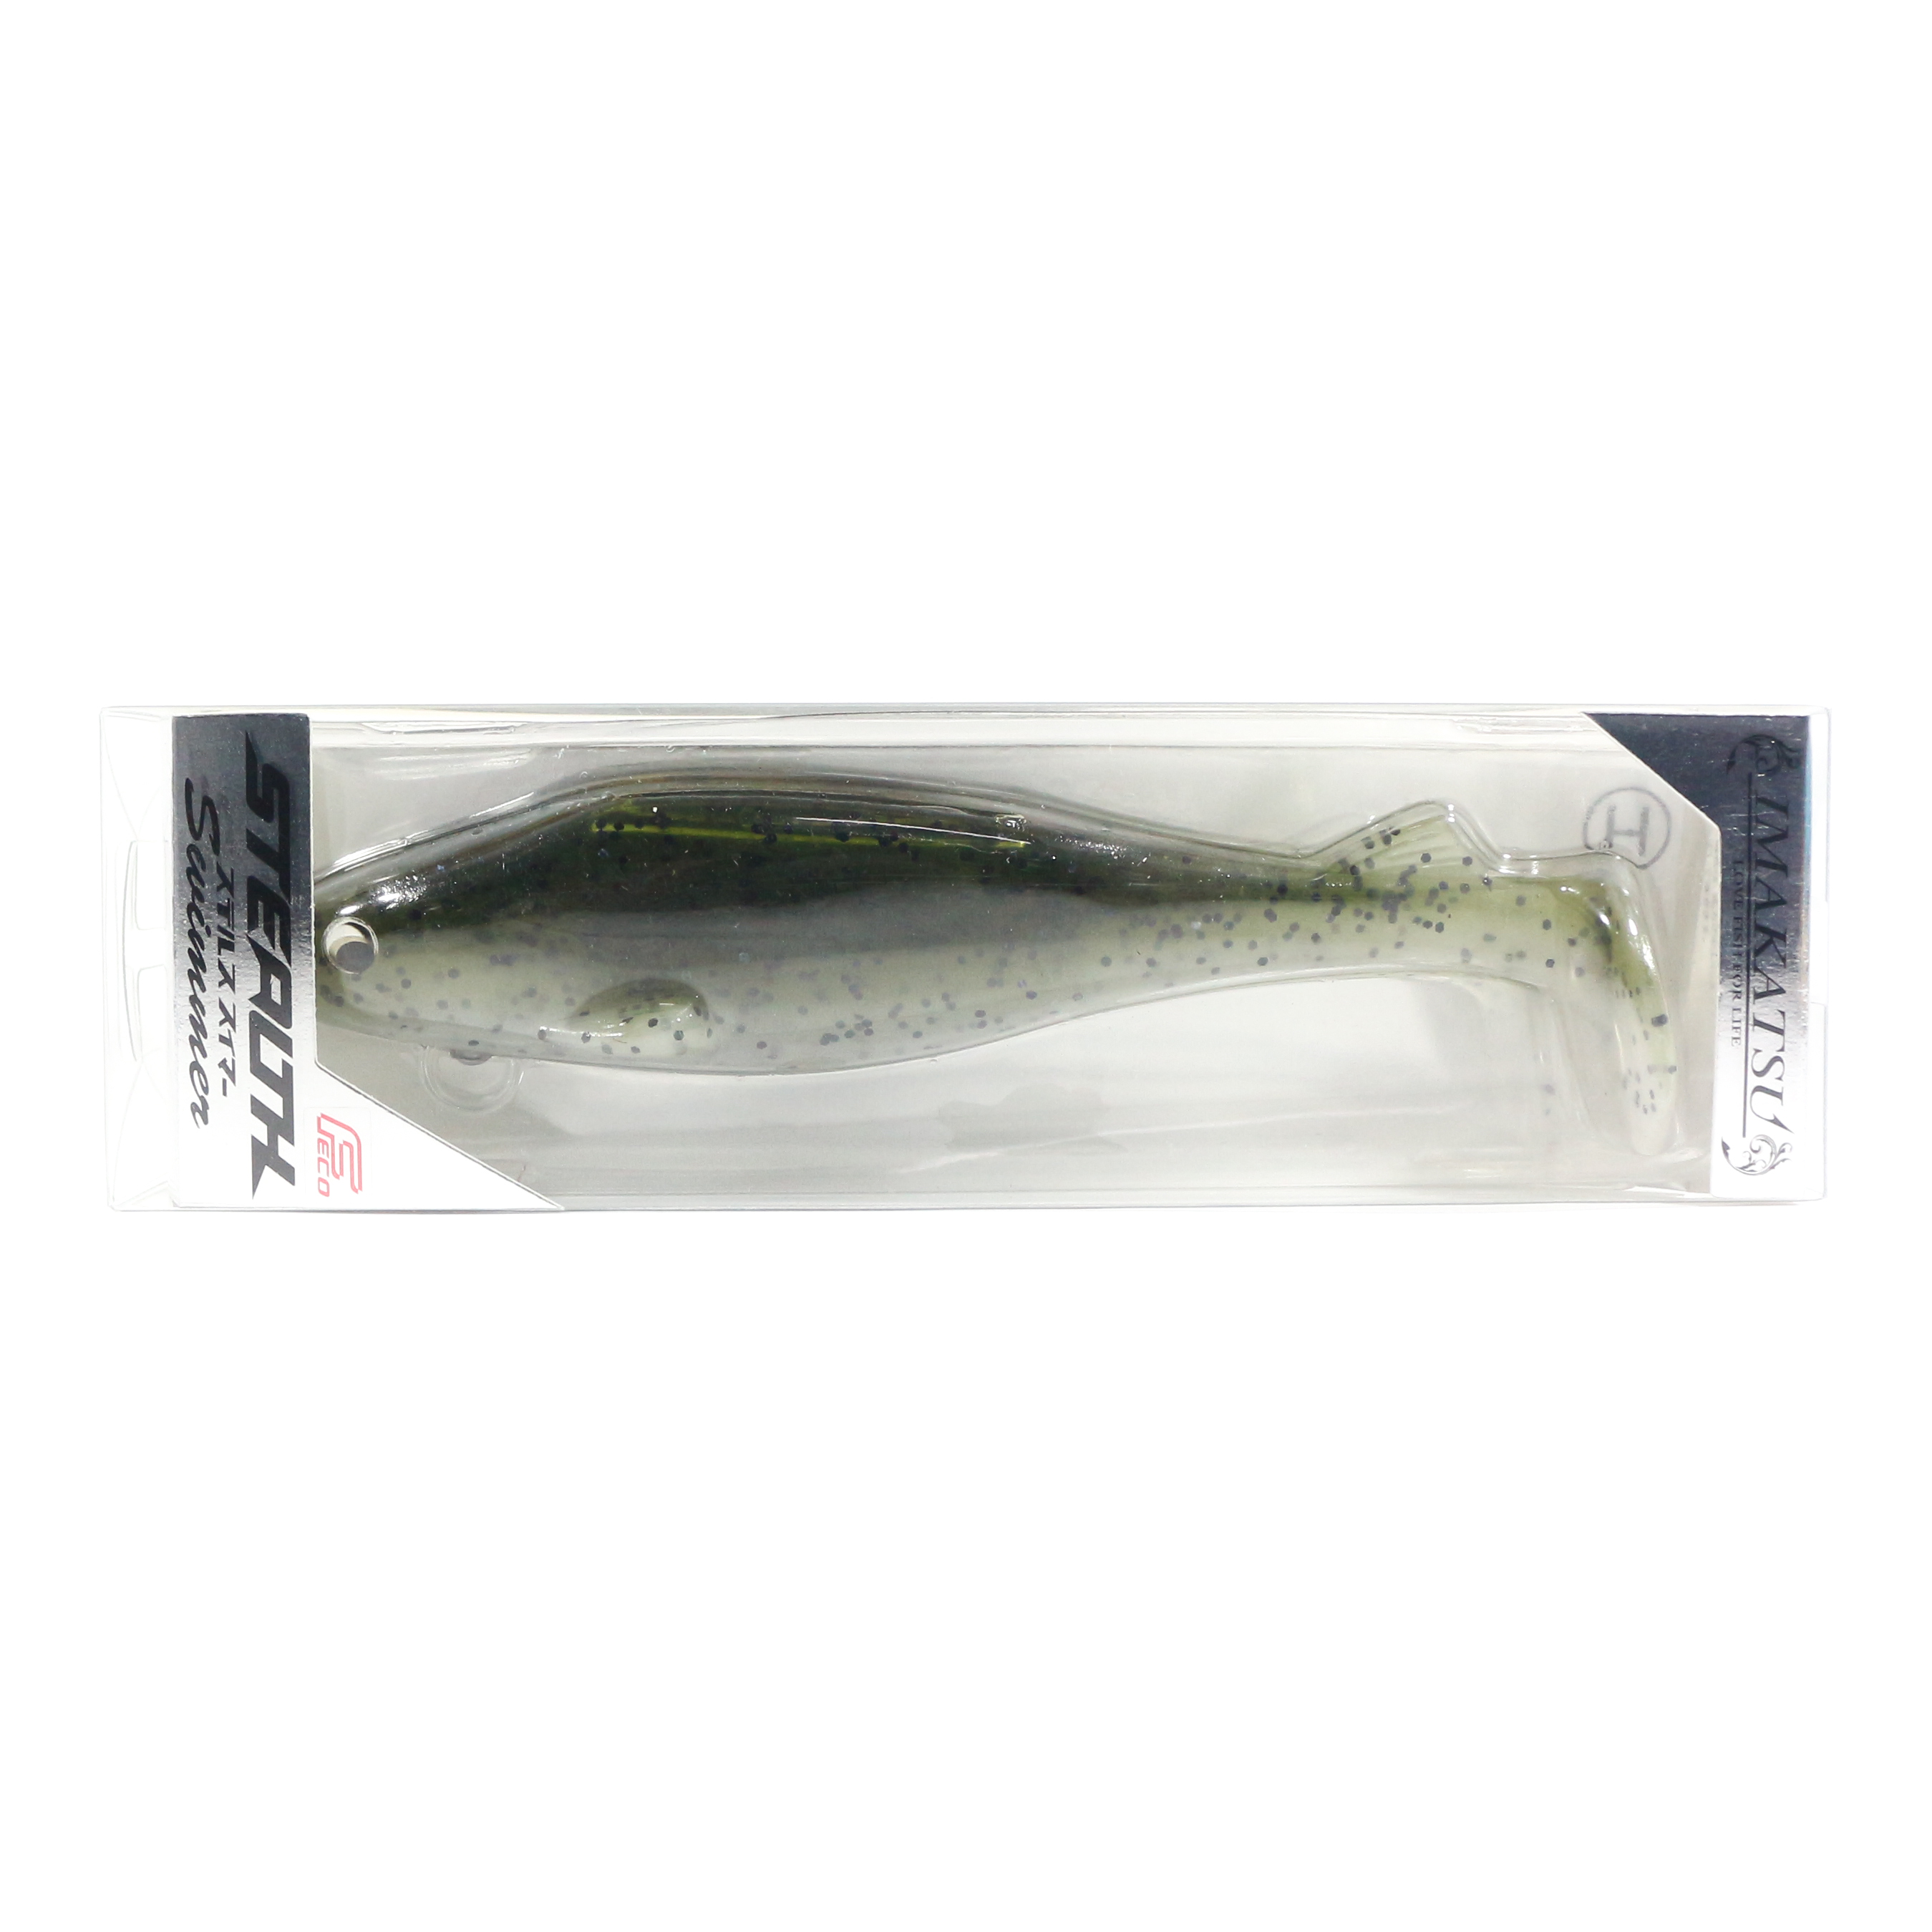 Sale Imakatsu Stealth Swimmer Sinking Lure - one pack 2 pieces S-309 (0335)